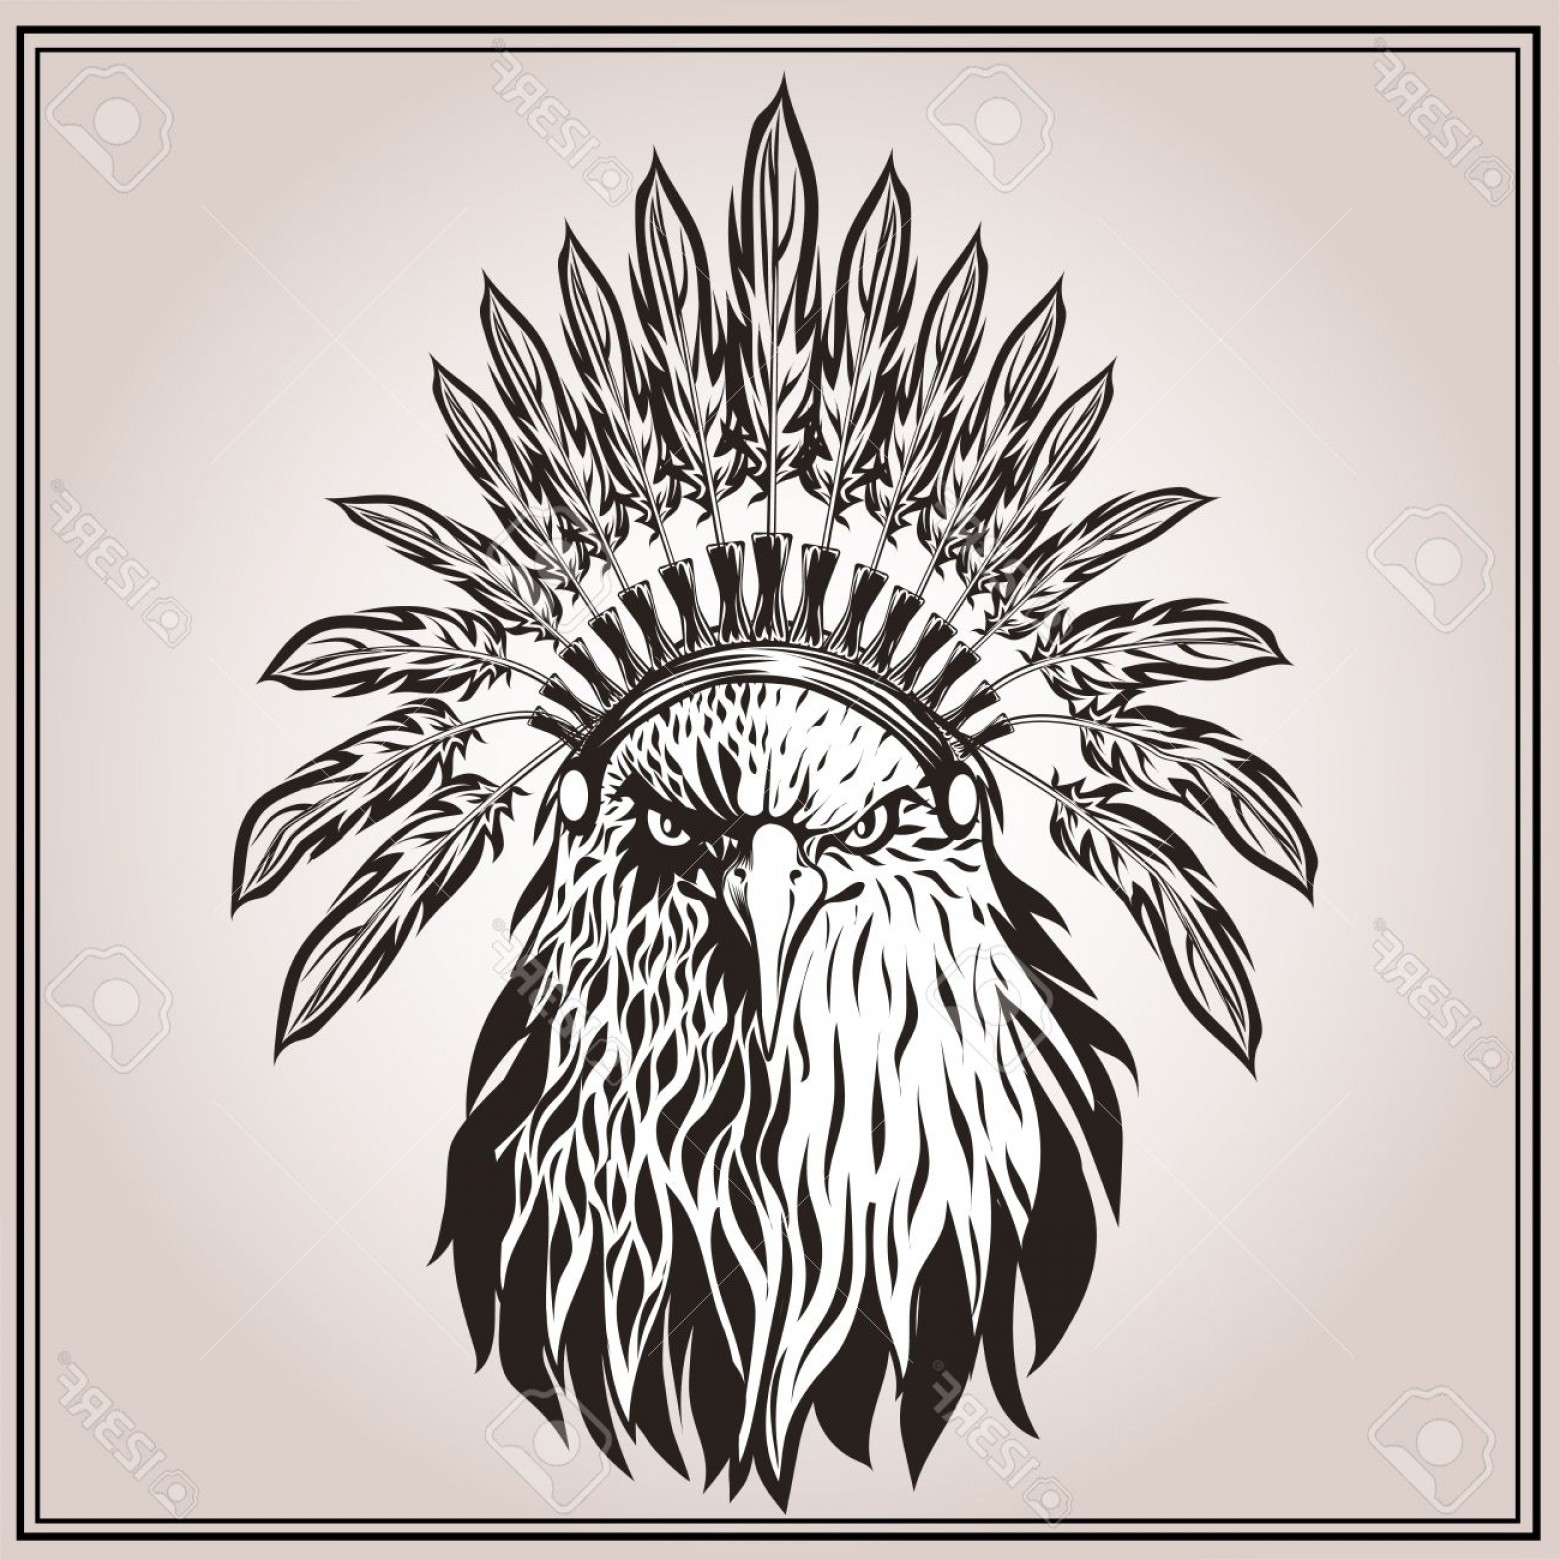 1560x1560 Photostock Vector American Eagle In Ethnic Indian Headdress With